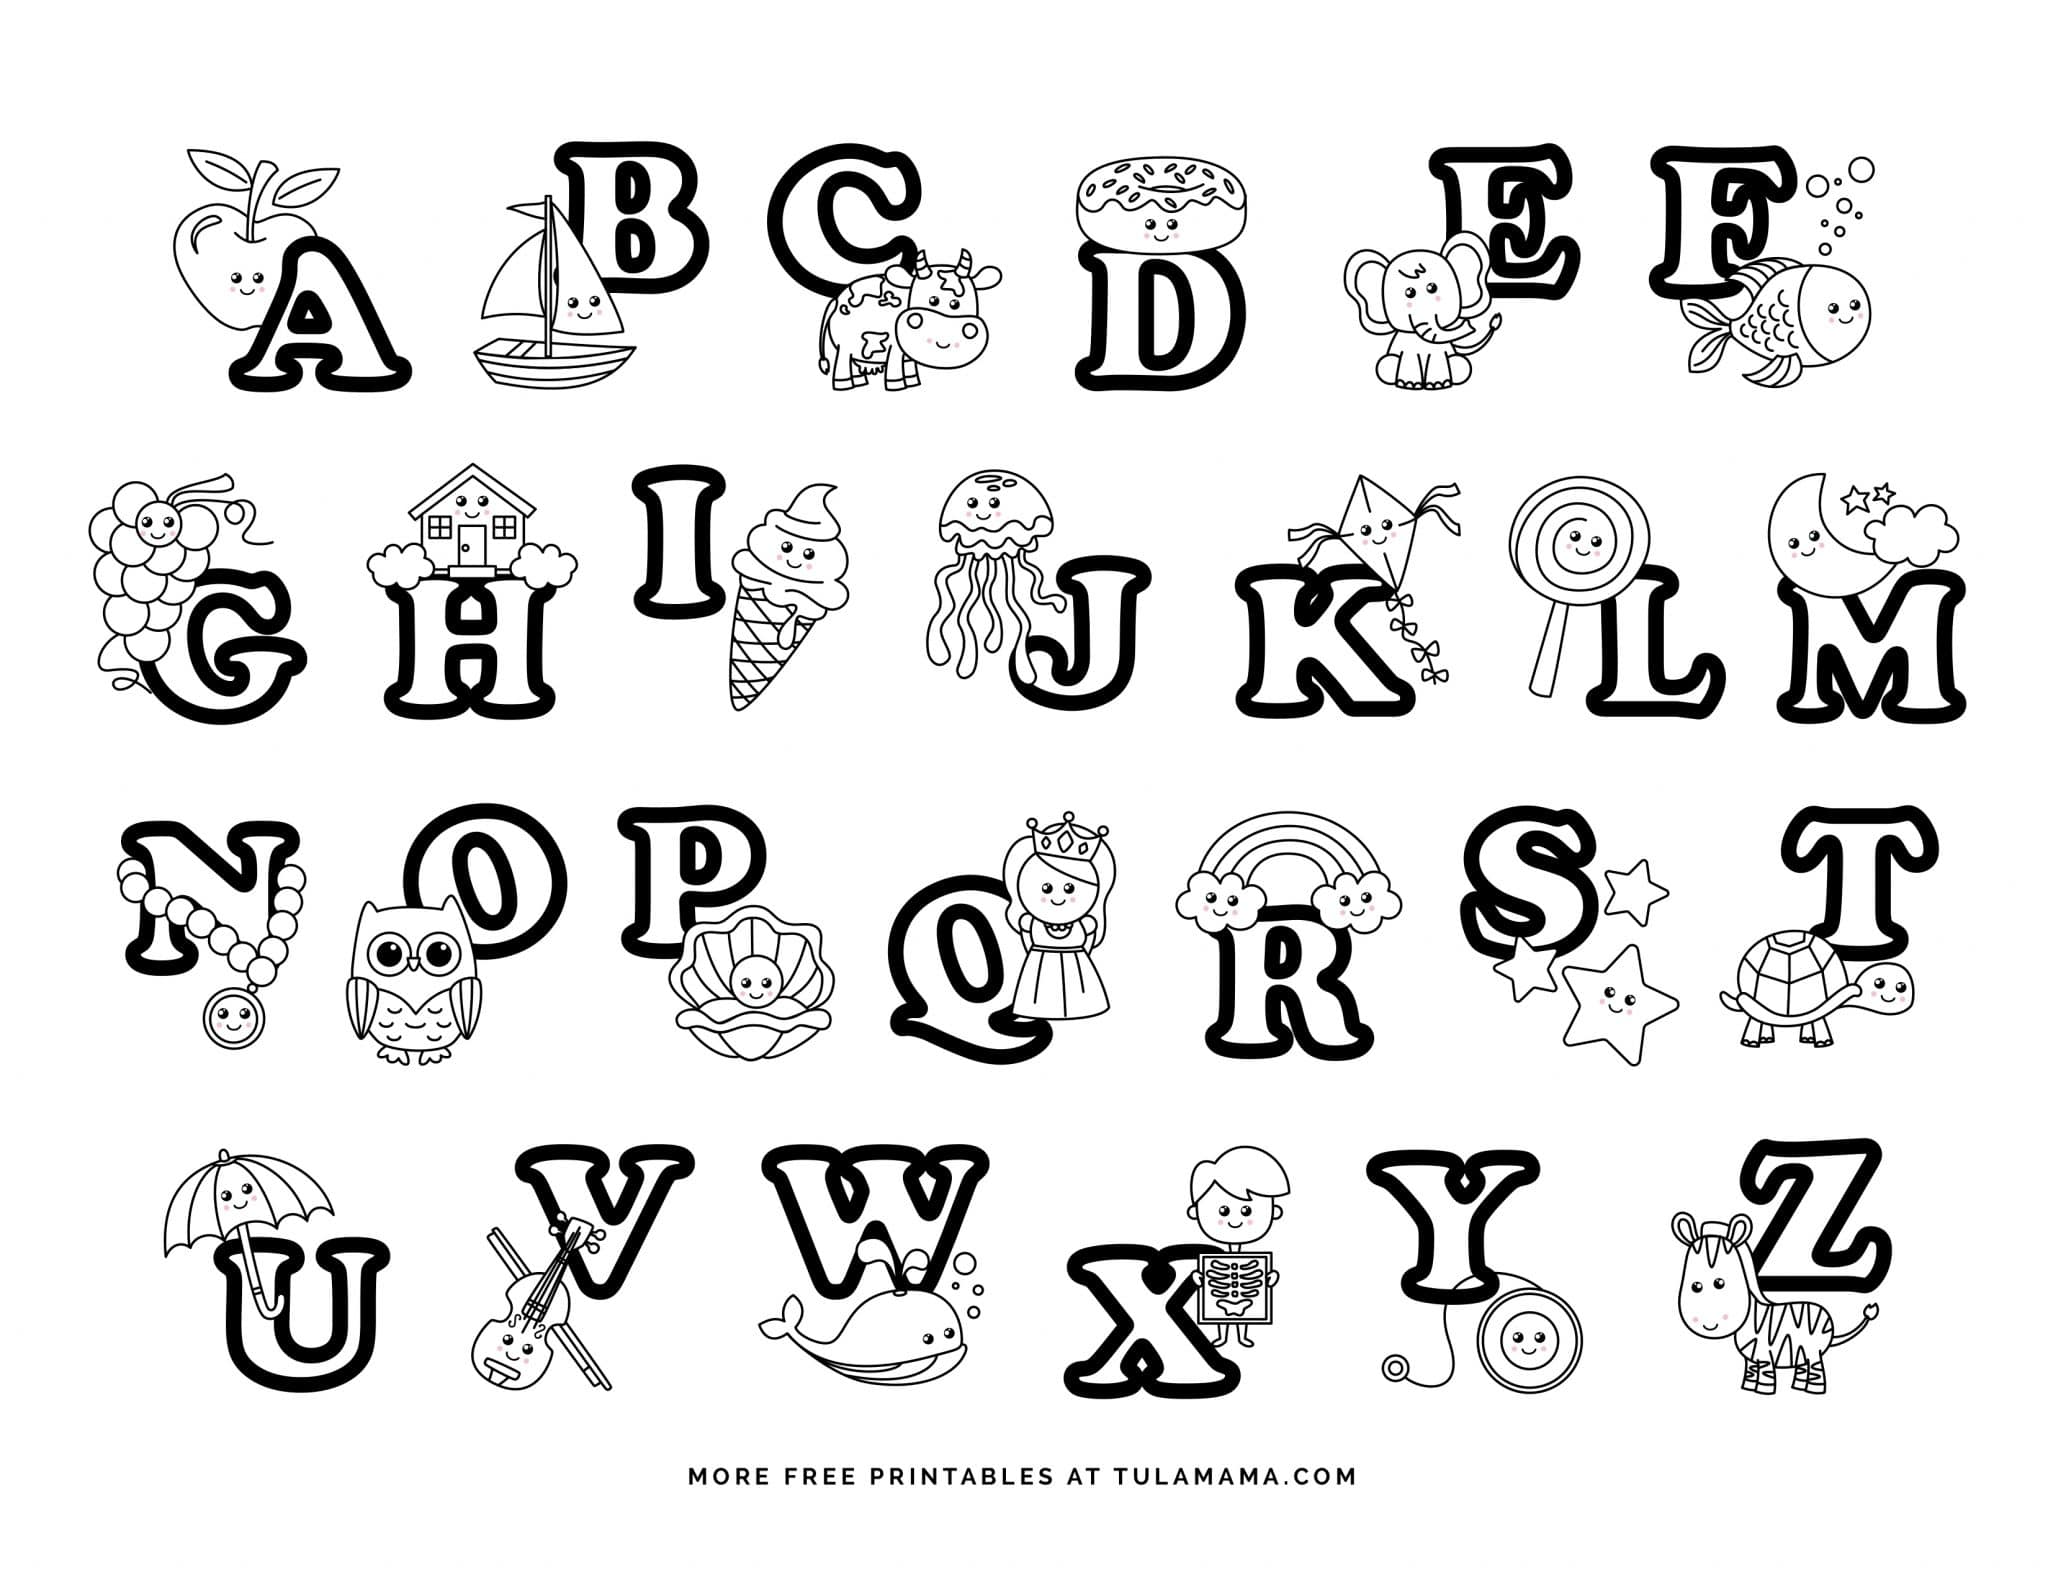 abc coloring page download abc coloring page coloring wizards page coloring abc